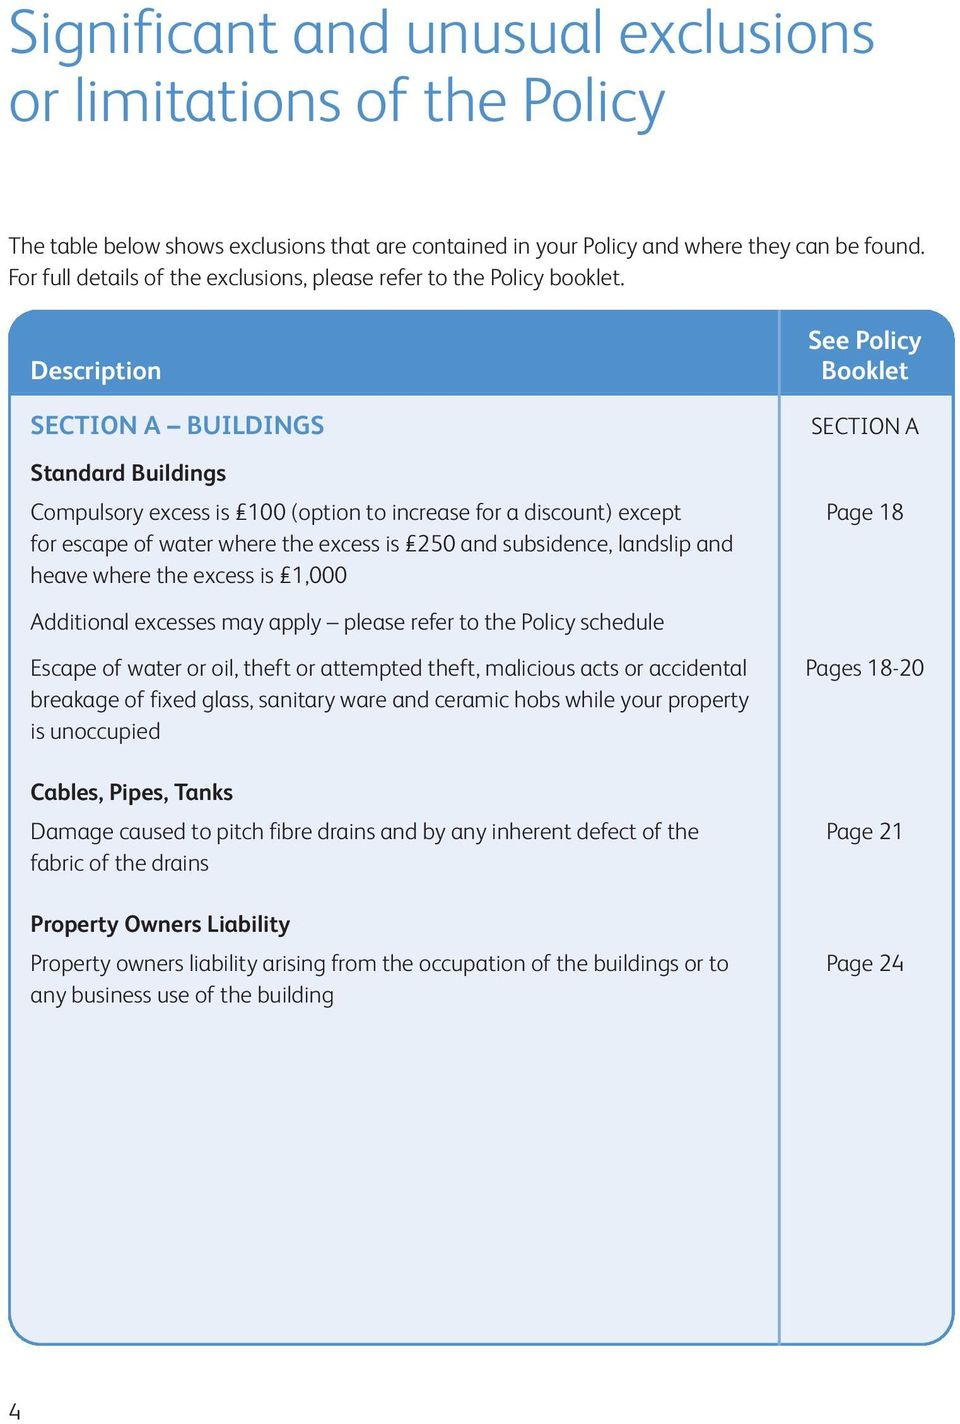 Description SECTION A BUILDINGS See Policy Booklet SECTION A Standard Buildings Compulsory excess is 100 (option to increase for a discount) except Page 18 for escape of water where the excess is 250